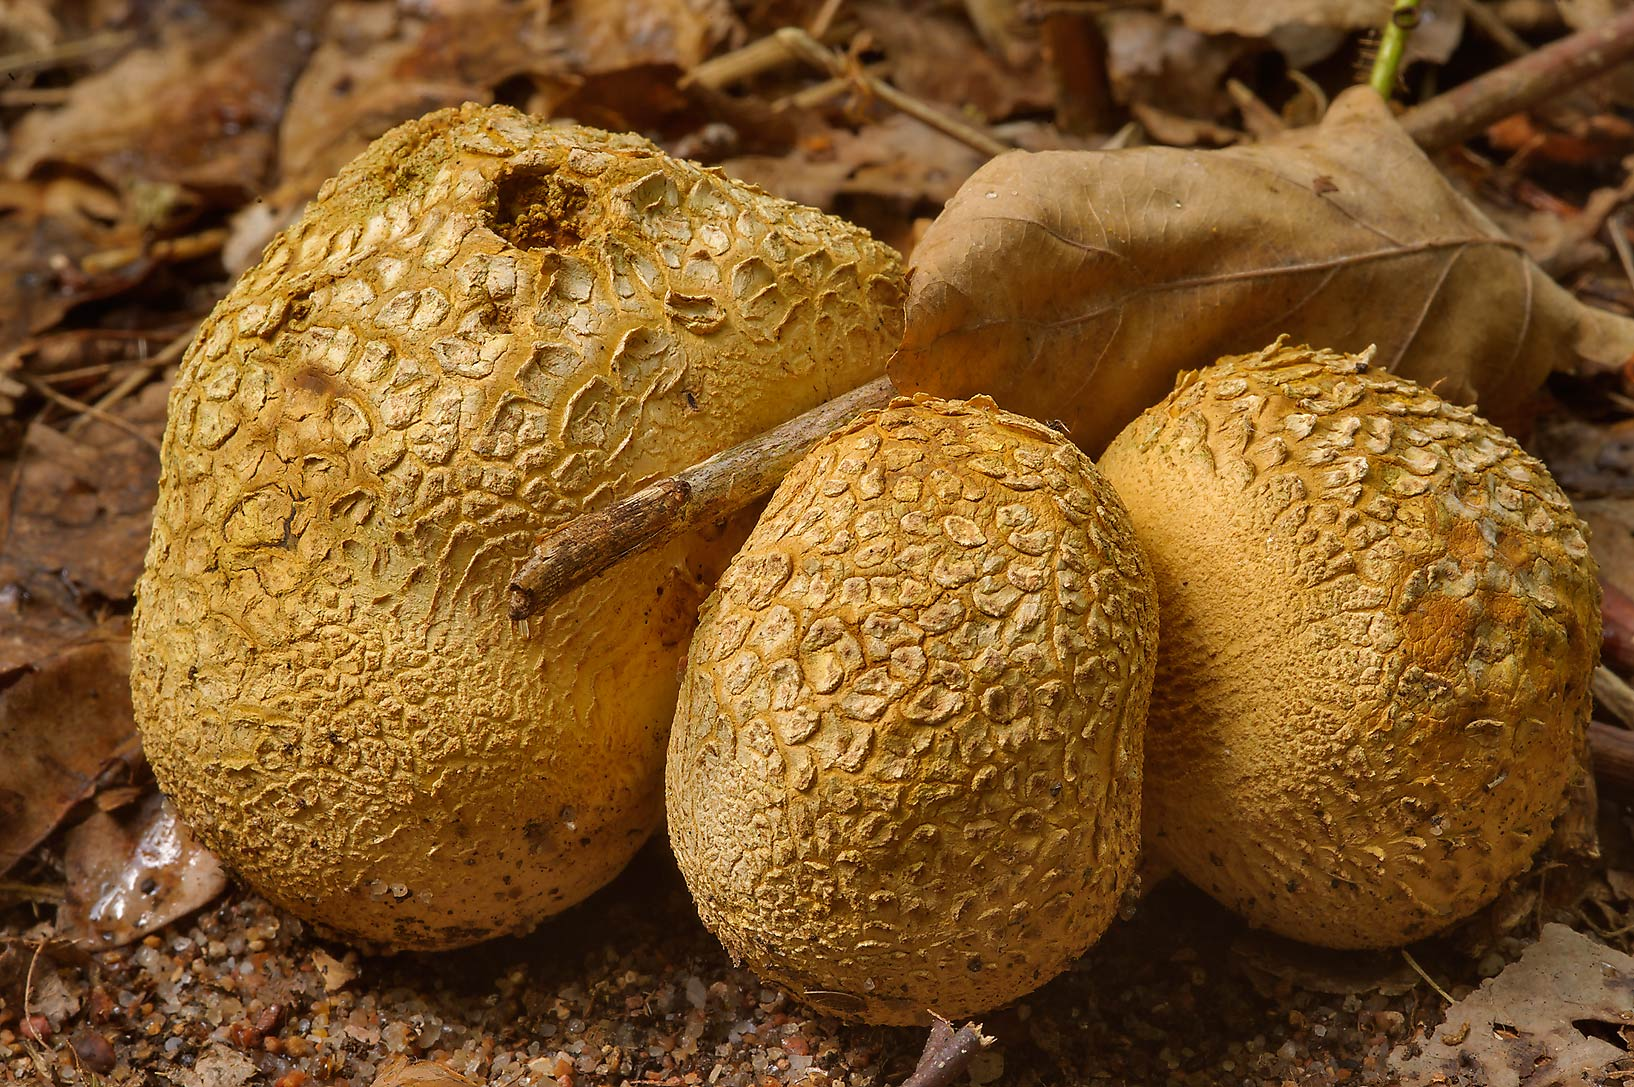 Bodies of Earthball mushrooms (Scleroderma...west from St.Petersburg. Russia